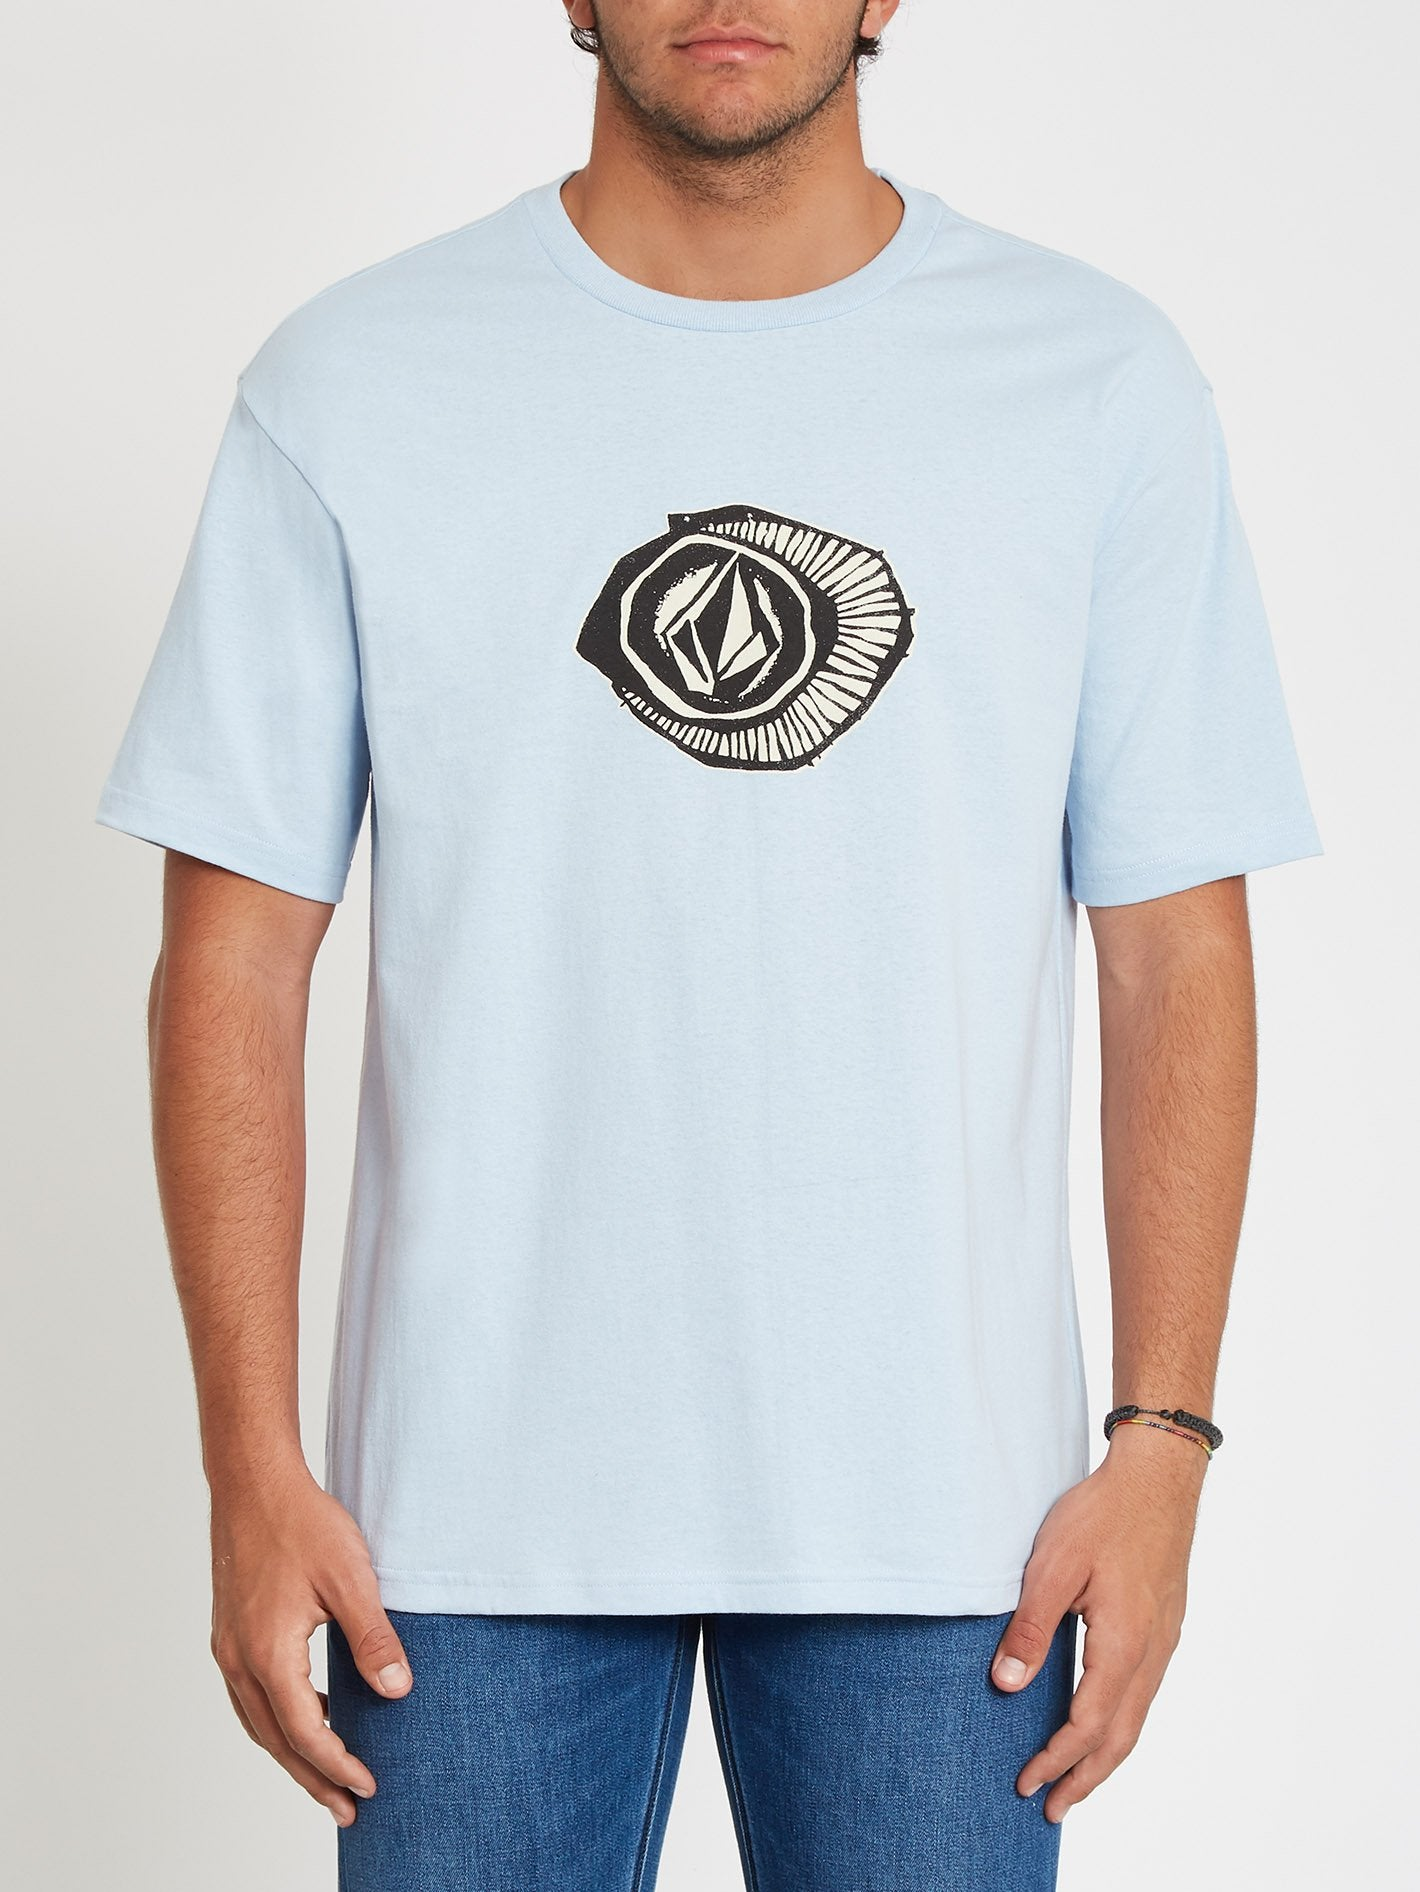 T-shirt Sick 180 - Aether Blue